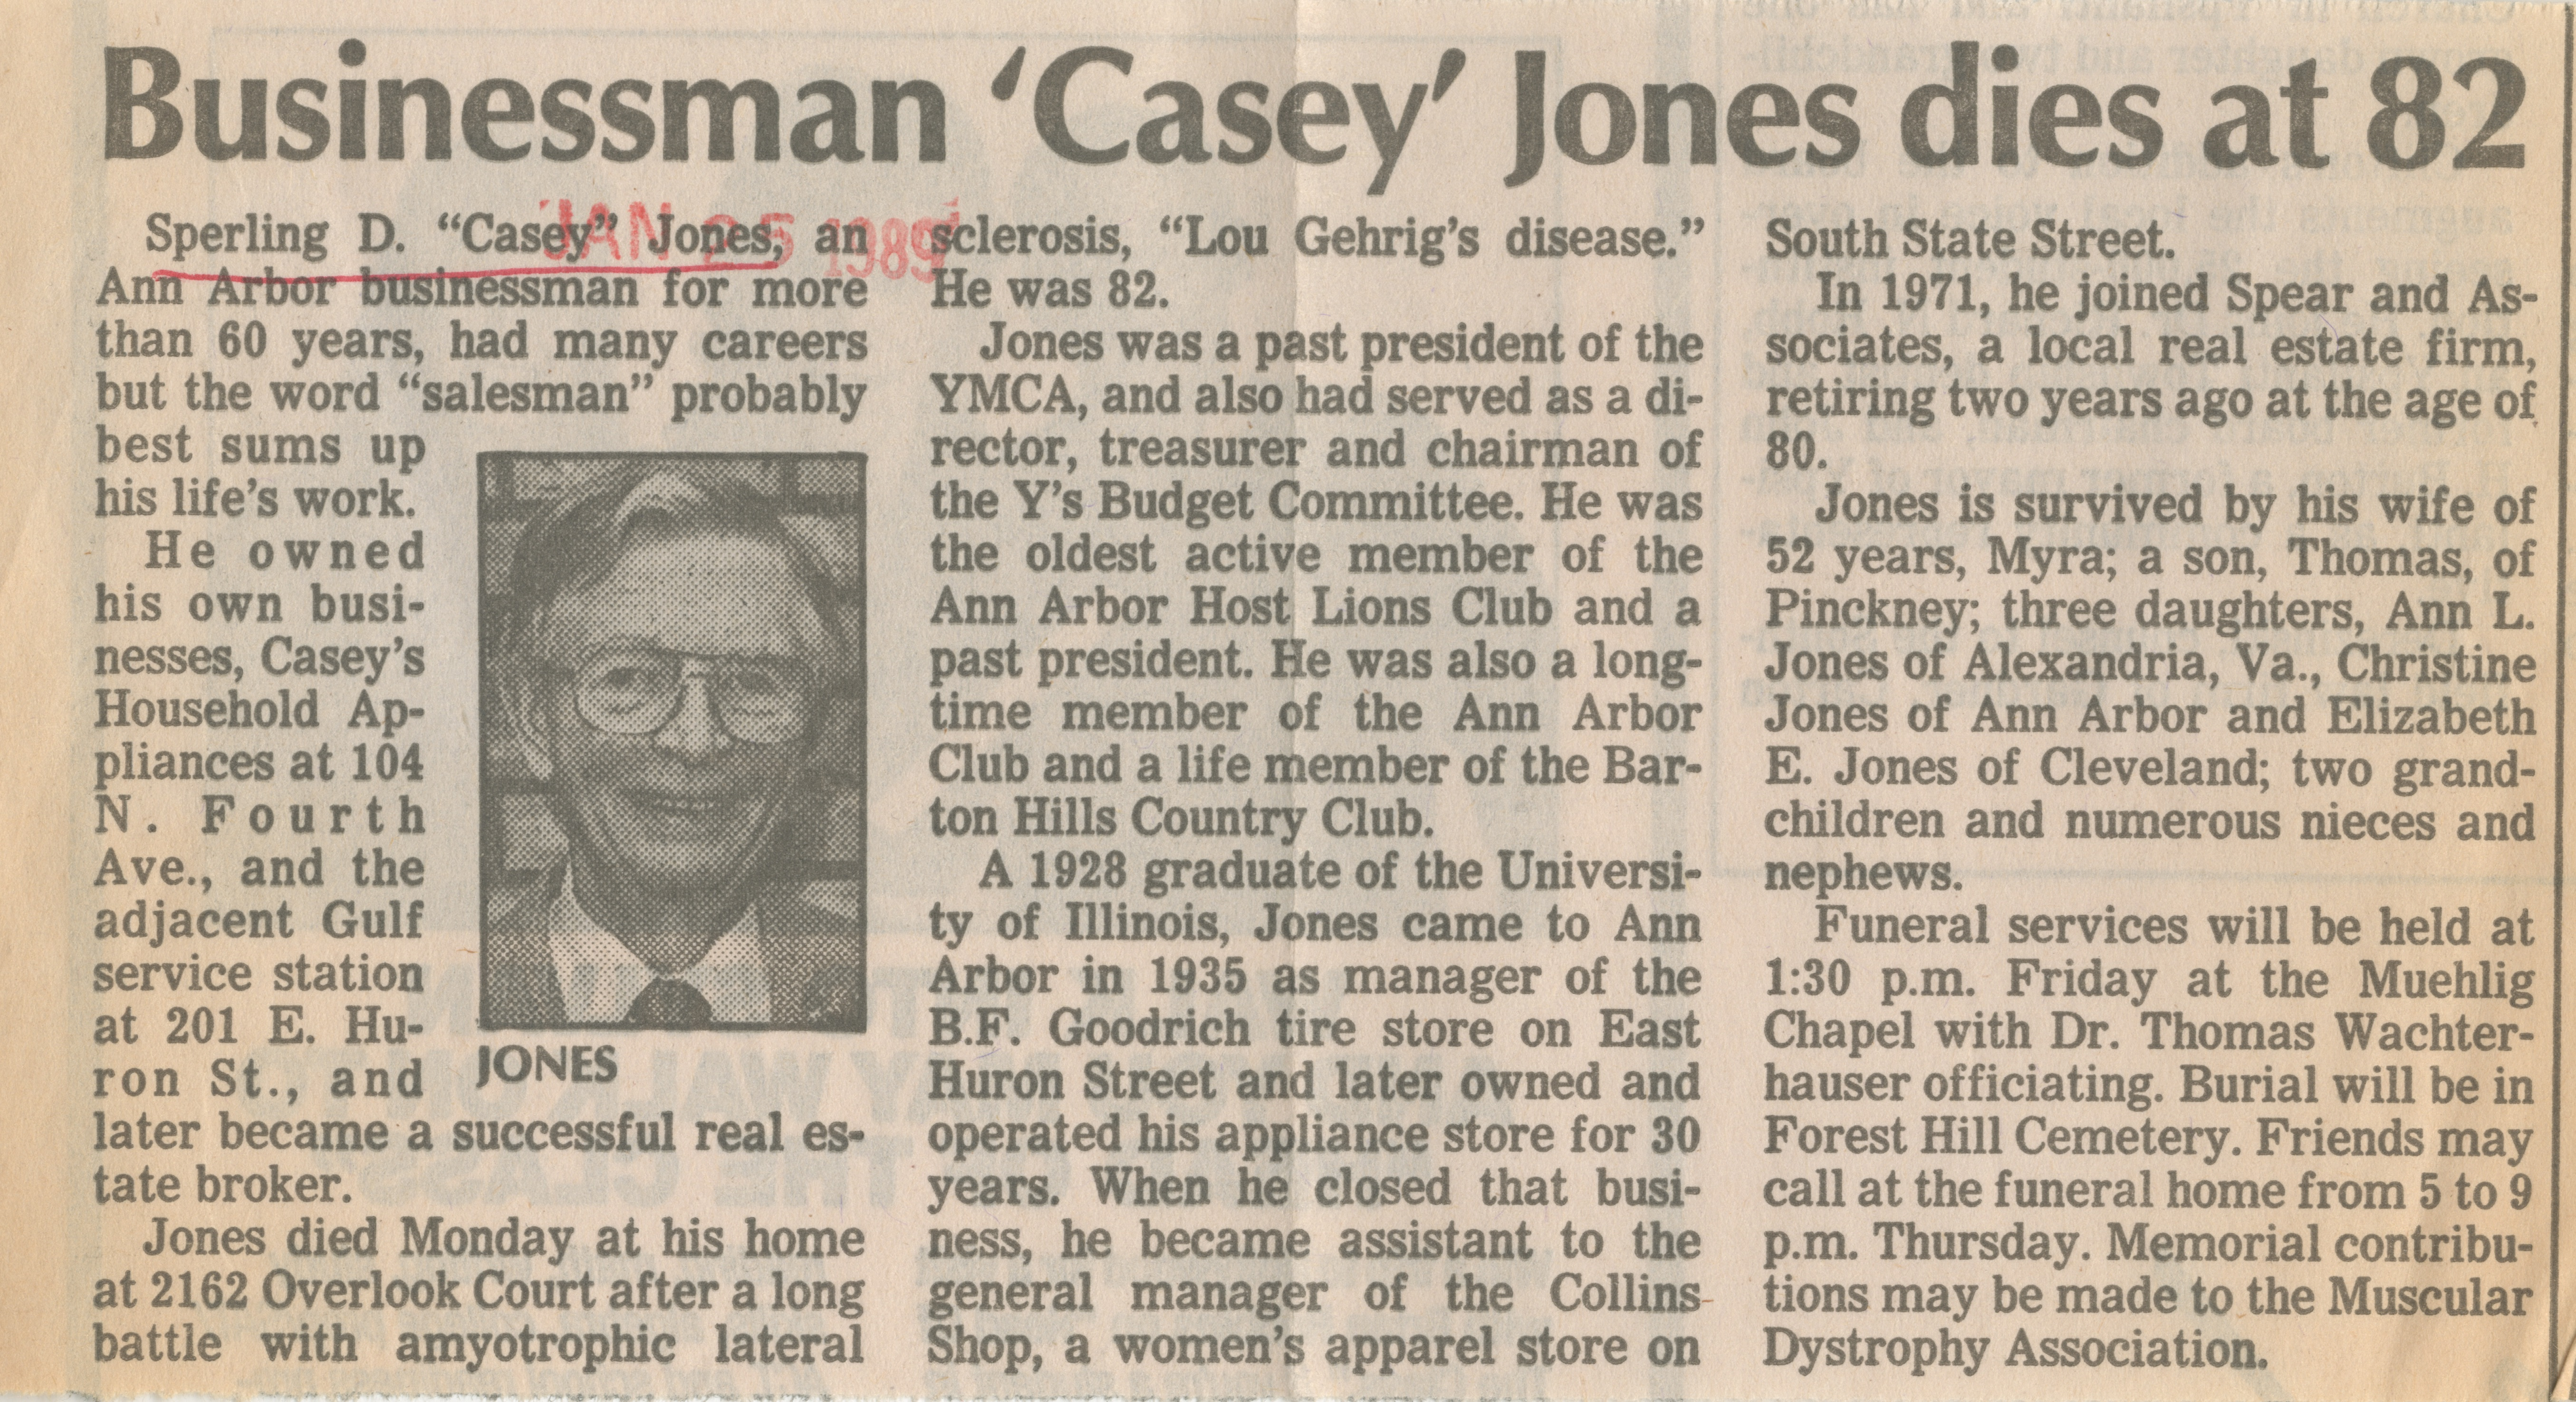 Businessman 'Casey' Jones dies at 82 image